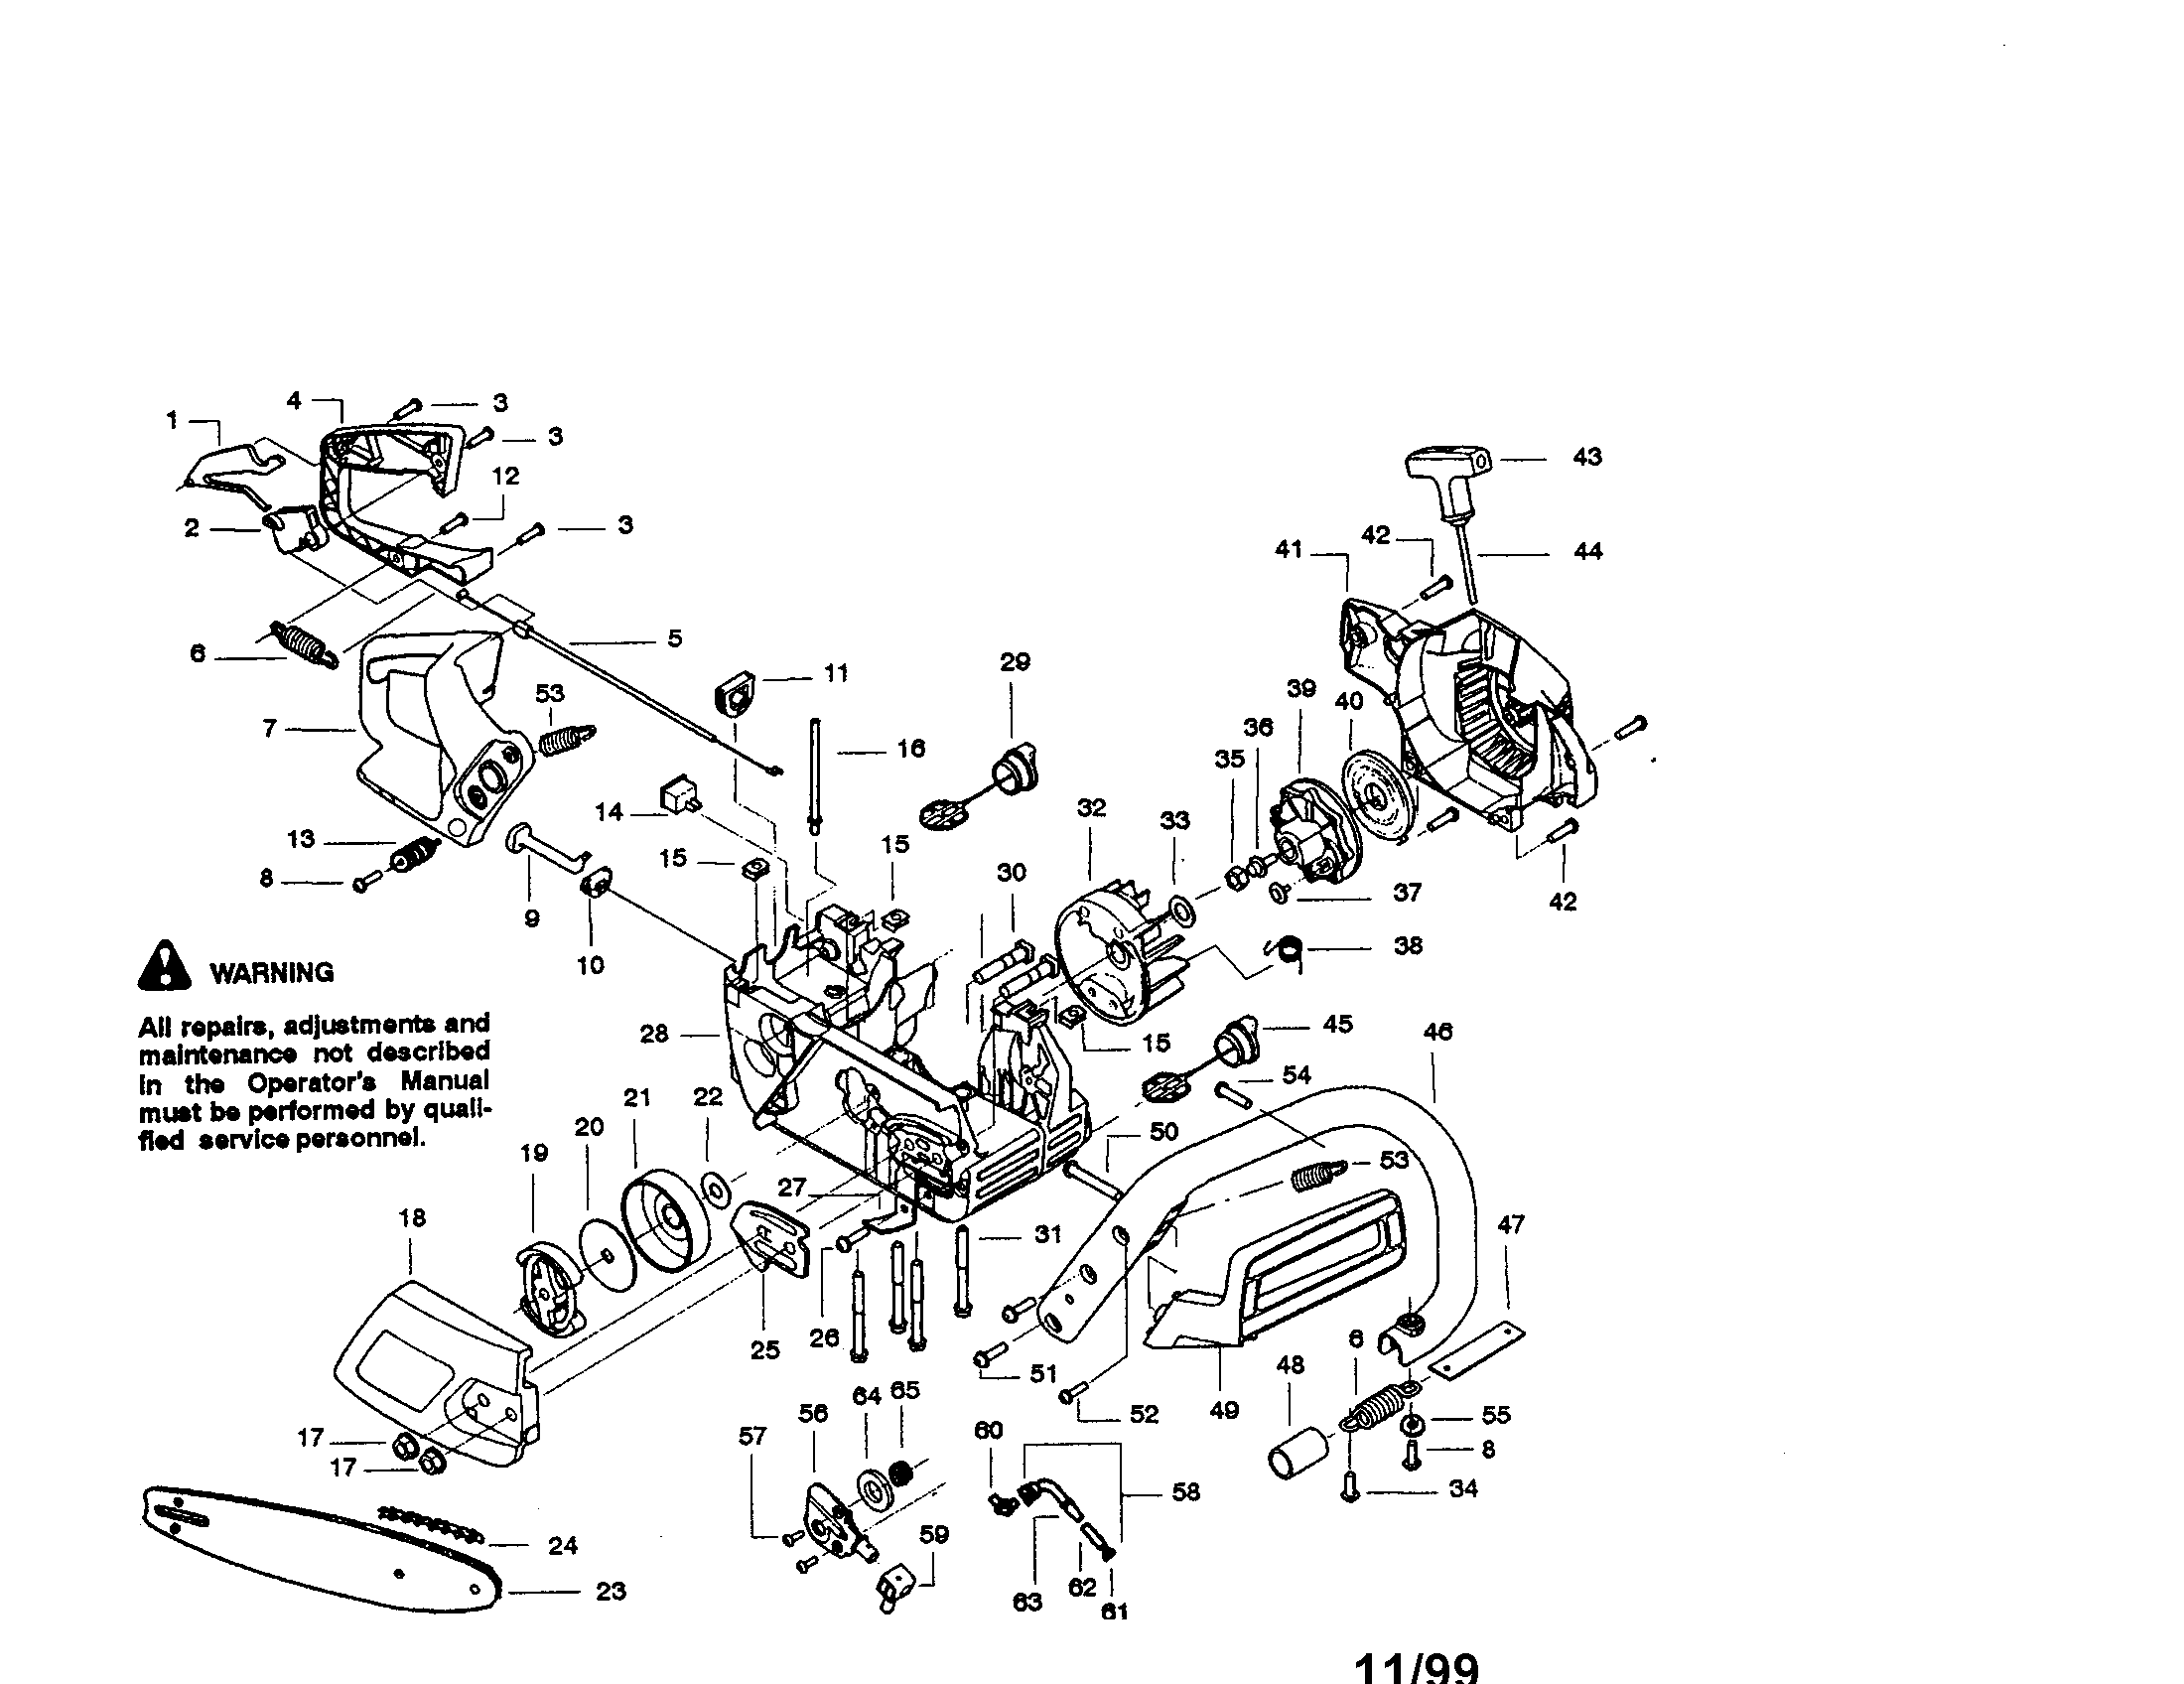 Chain Saw Diagram And Parts List For Craftsman